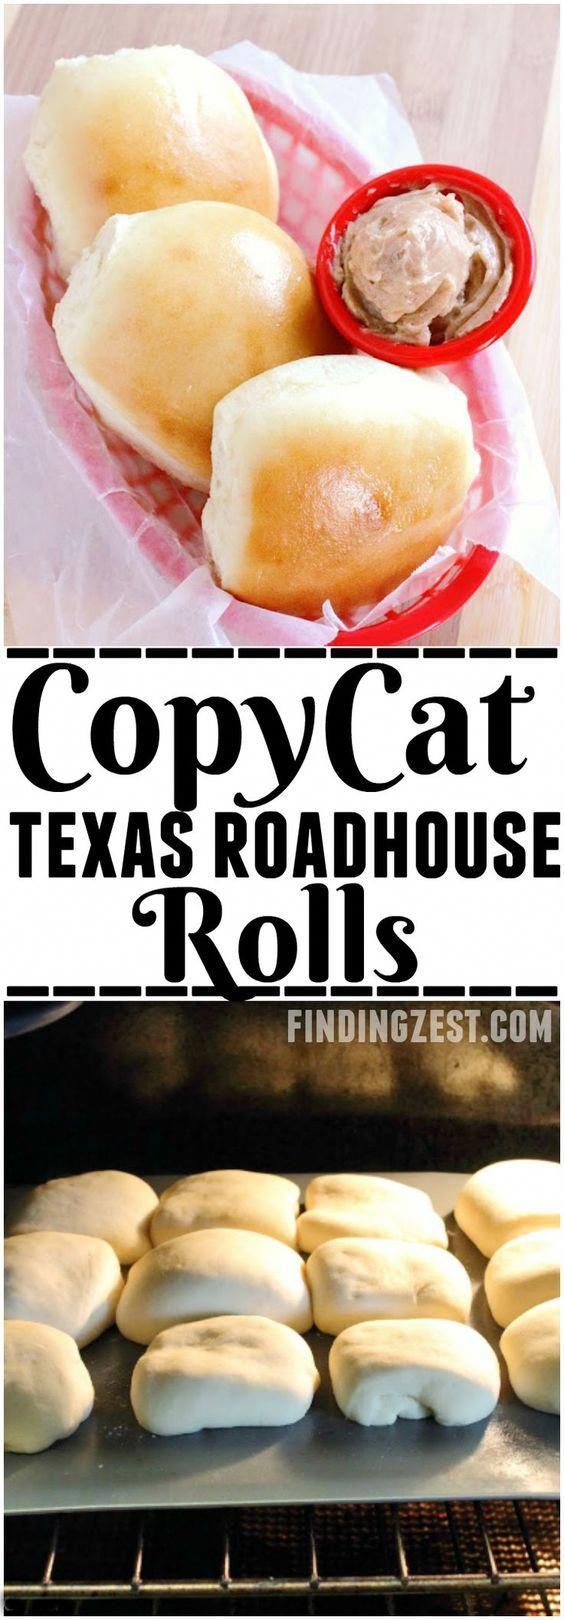 Copycat Texas Roadhouse Rolls with Cinnamon Butter